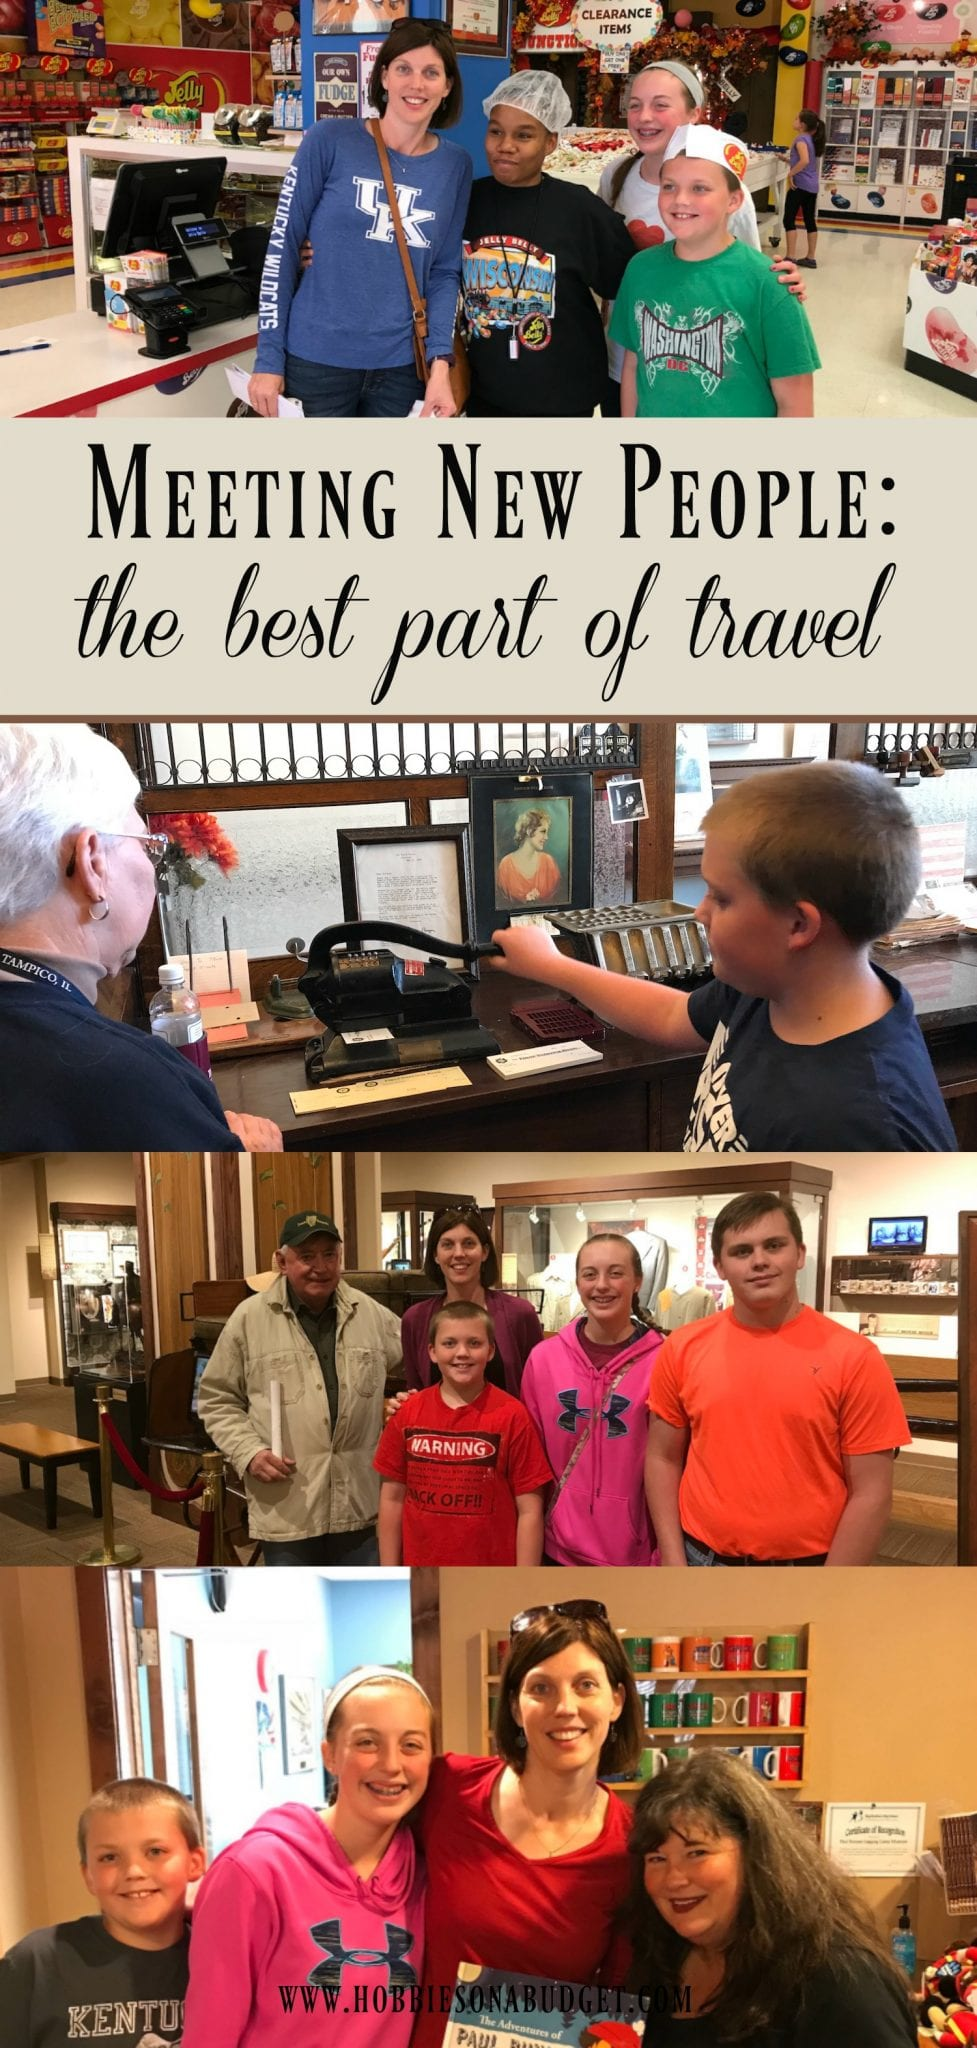 Meeting New People - the Best part of travel